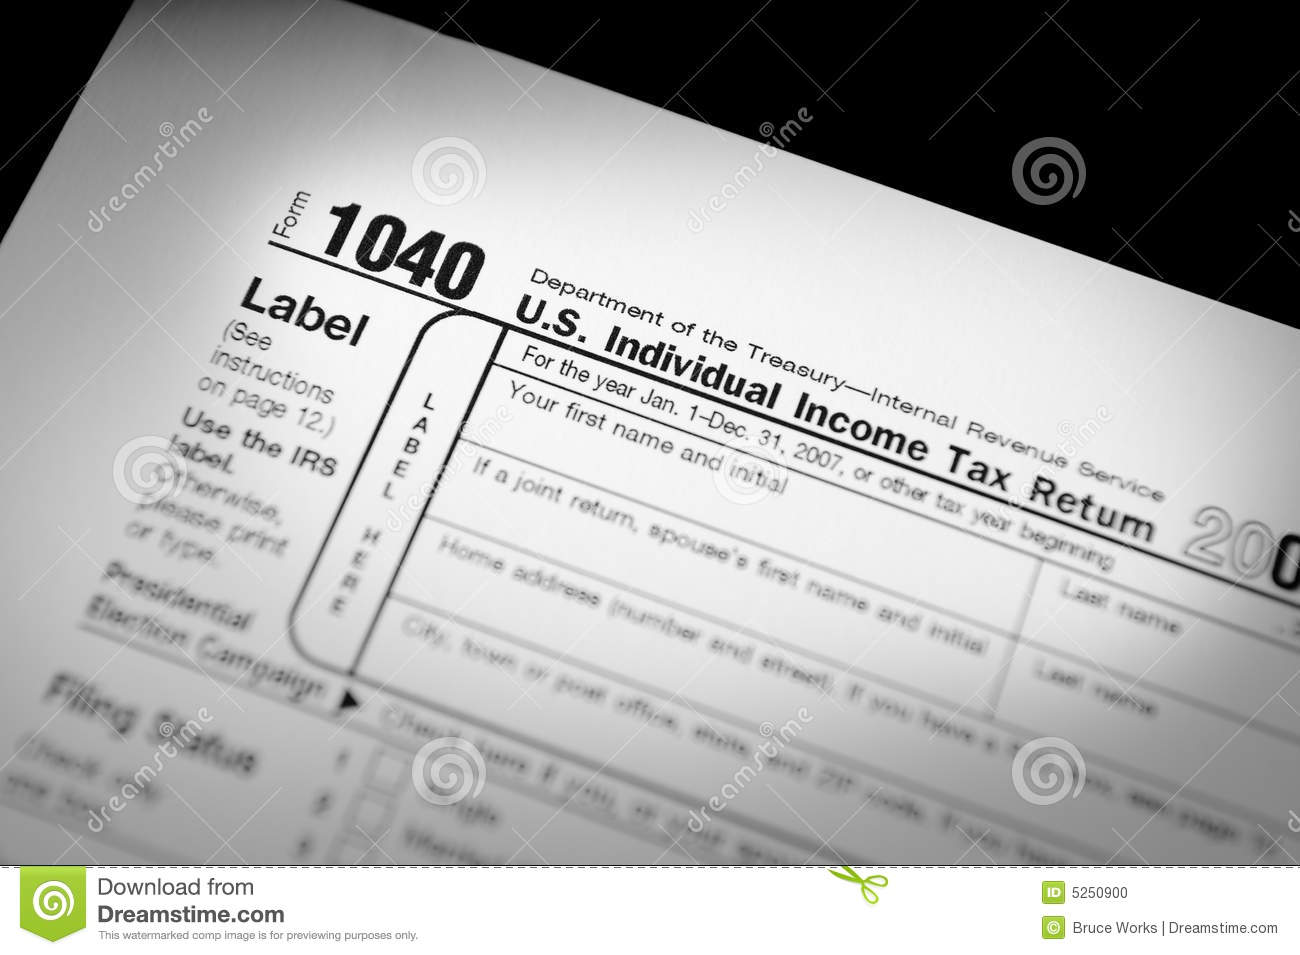 IRS Form 1040 stock photo. Image of 1040, dependents, revenue - 5250900